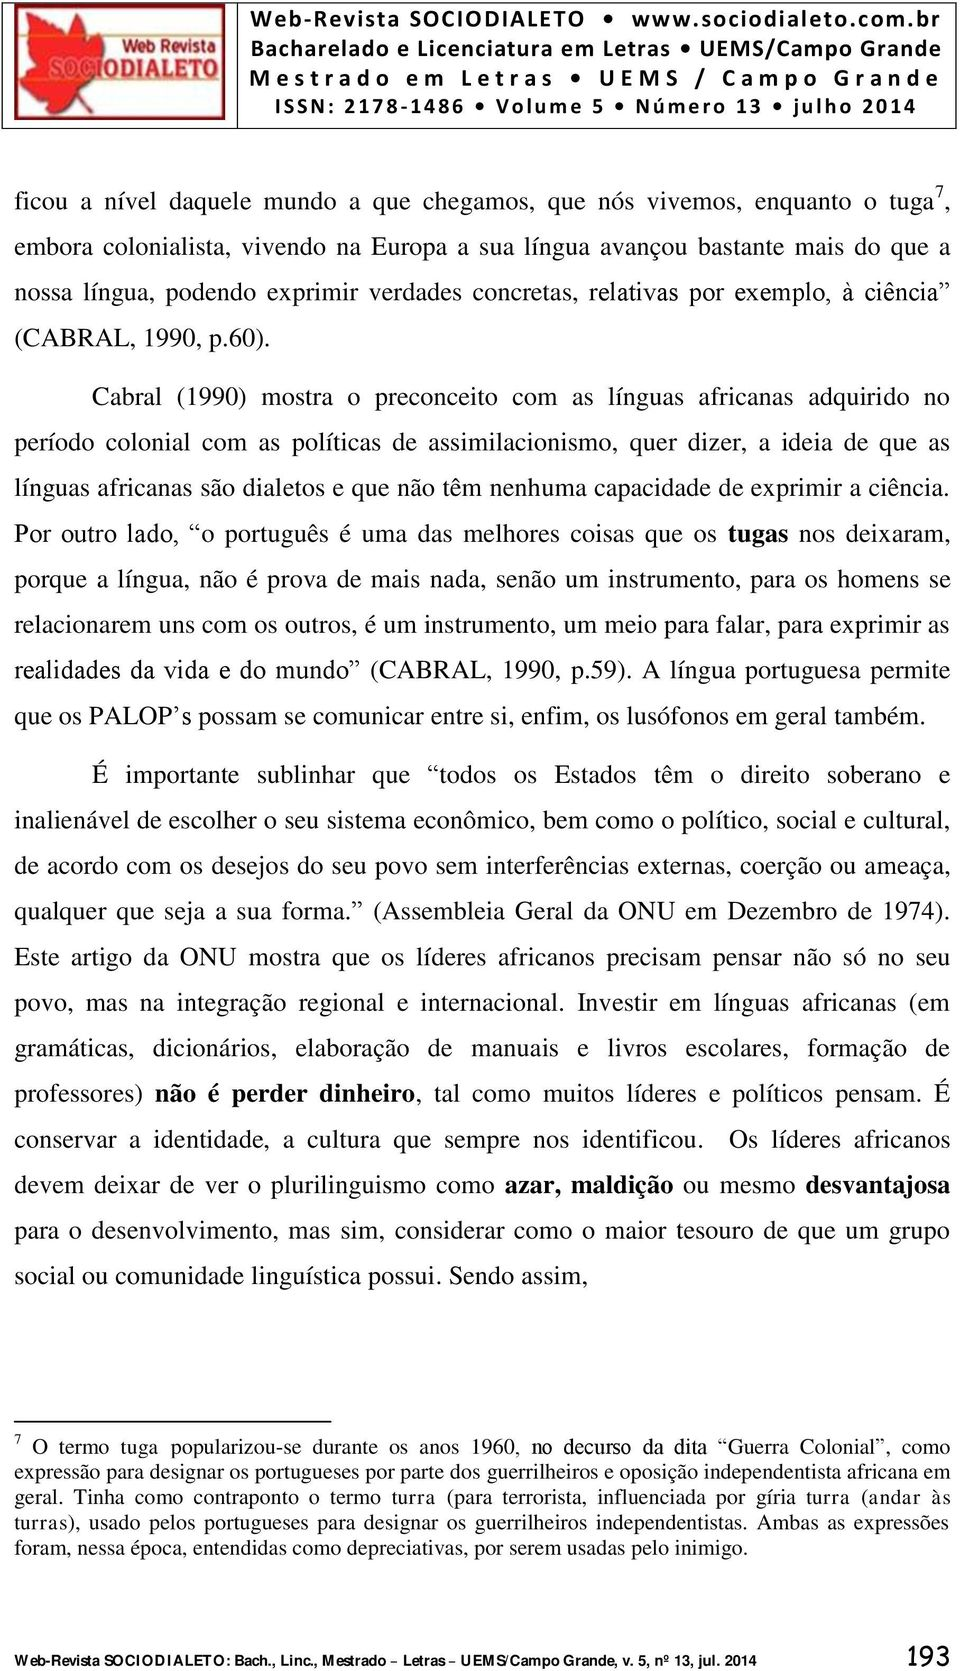 Cabral (1990) mostra o preconceito com as línguas africanas adquirido no período colonial com as políticas de assimilacionismo, quer dizer, a ideia de que as línguas africanas são dialetos e que não